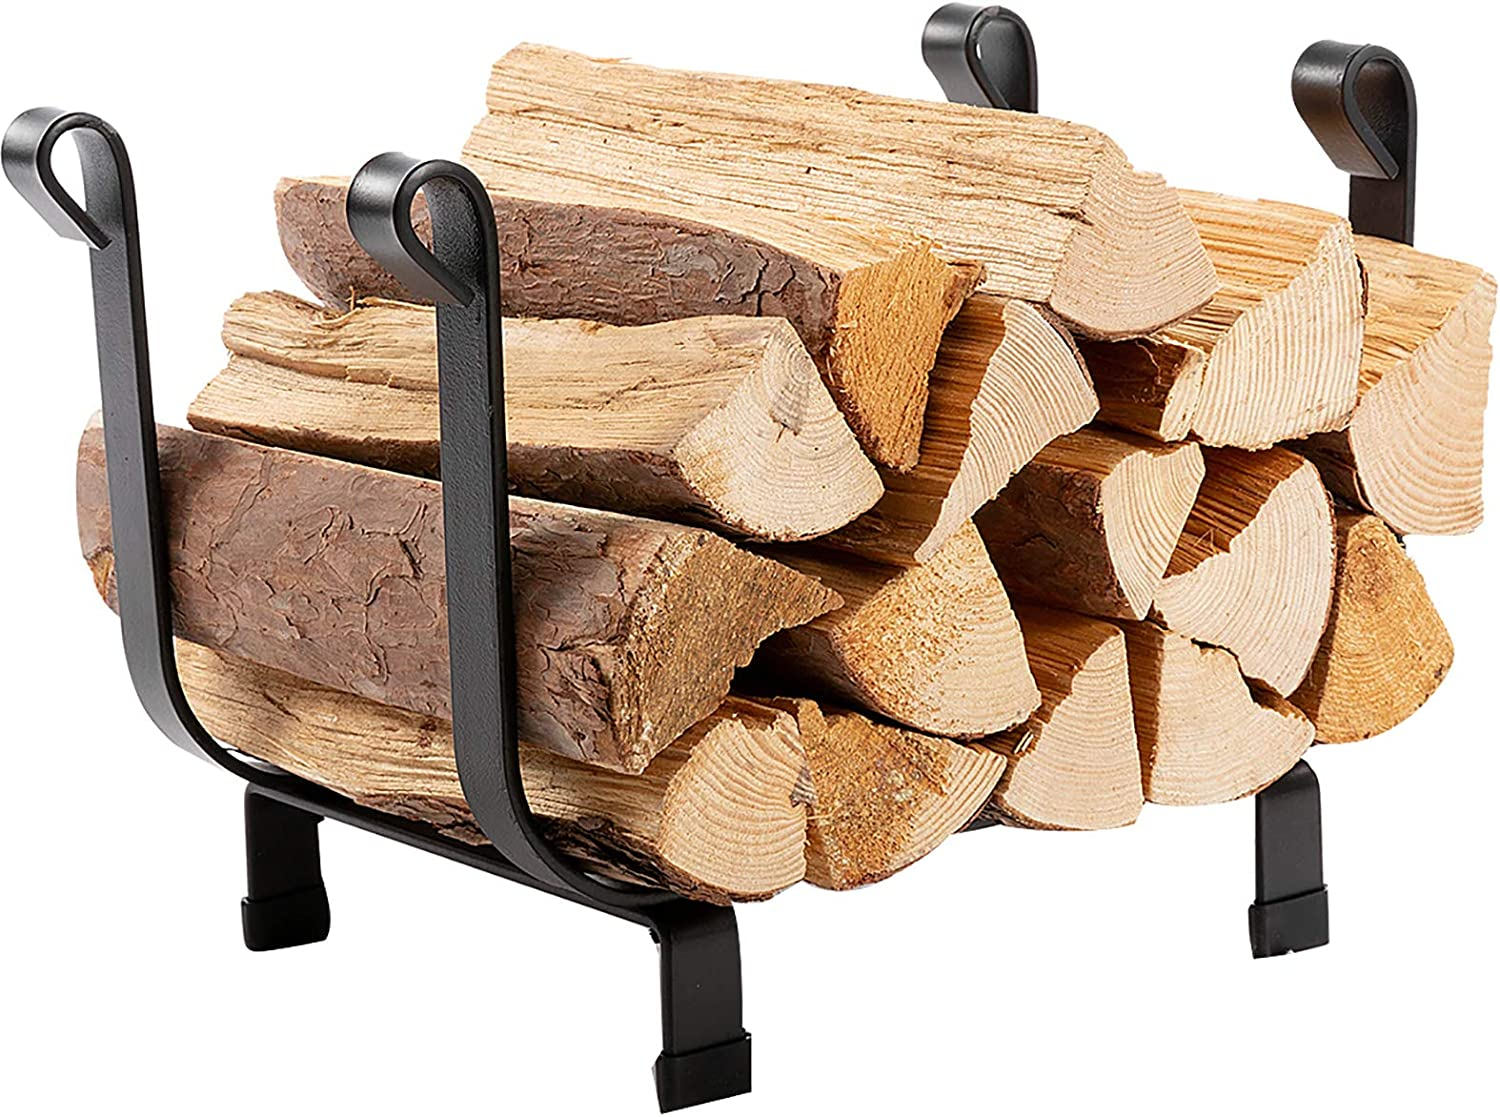 DOEWORKS Sale item 25% OFF 17 Inches Small Decorative Indoor Outdoor Firewood Log